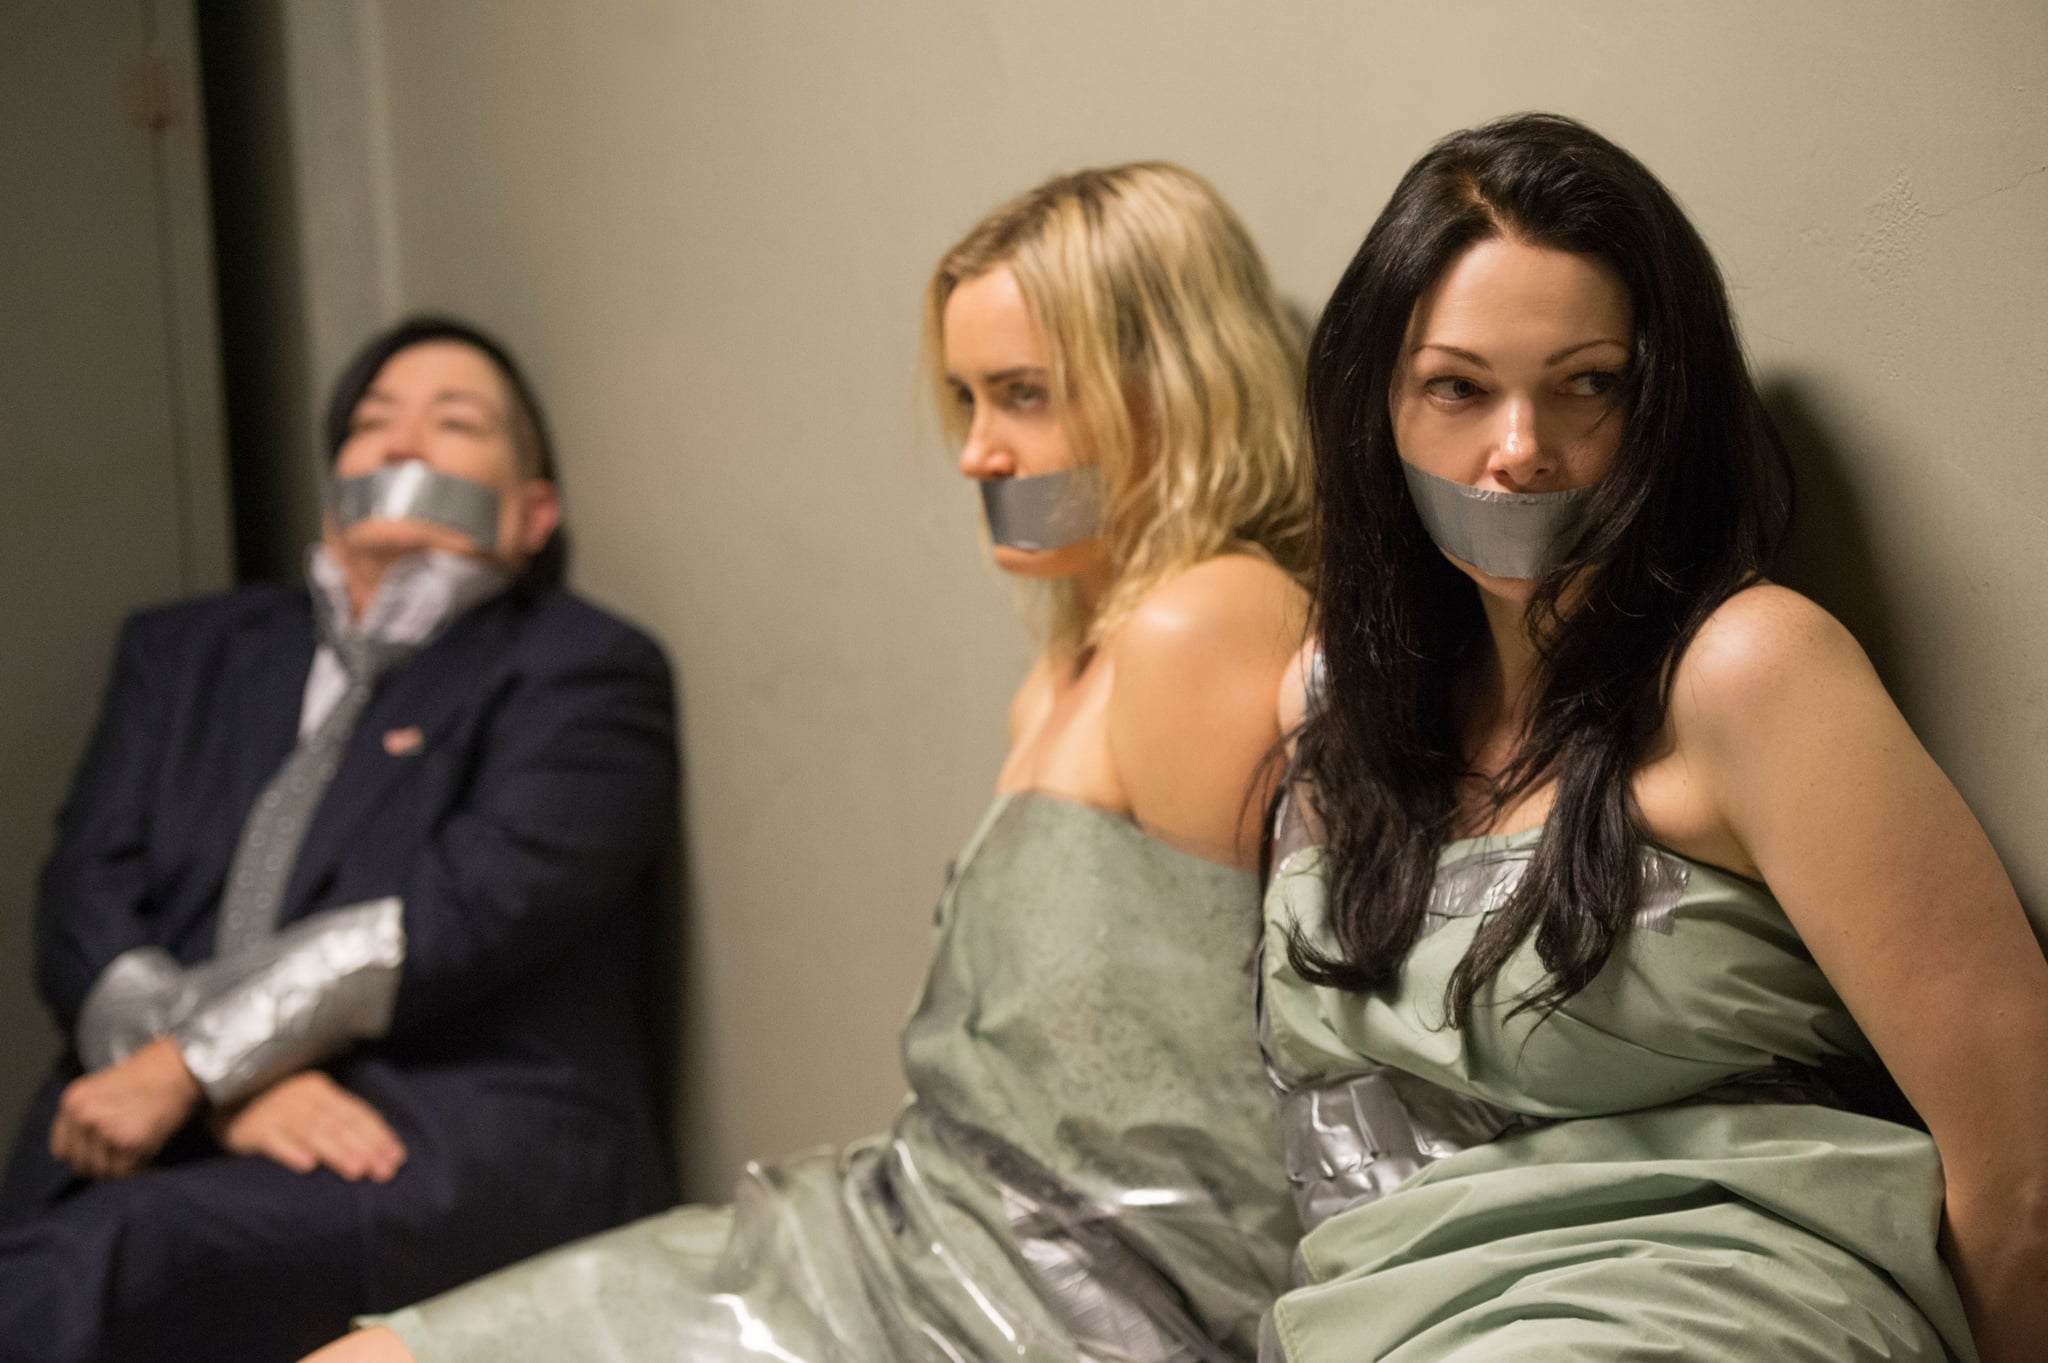 ORANGE IS THE NEW BLACK, Lea Delaria, Taylor Schilling, Laura Prepon in 'The Reverse Midas Touch'',  (Season 5, episode 510, aired June 9, 2017), ph: JoJo Whilden / Netflix / courtesy Everett Collection